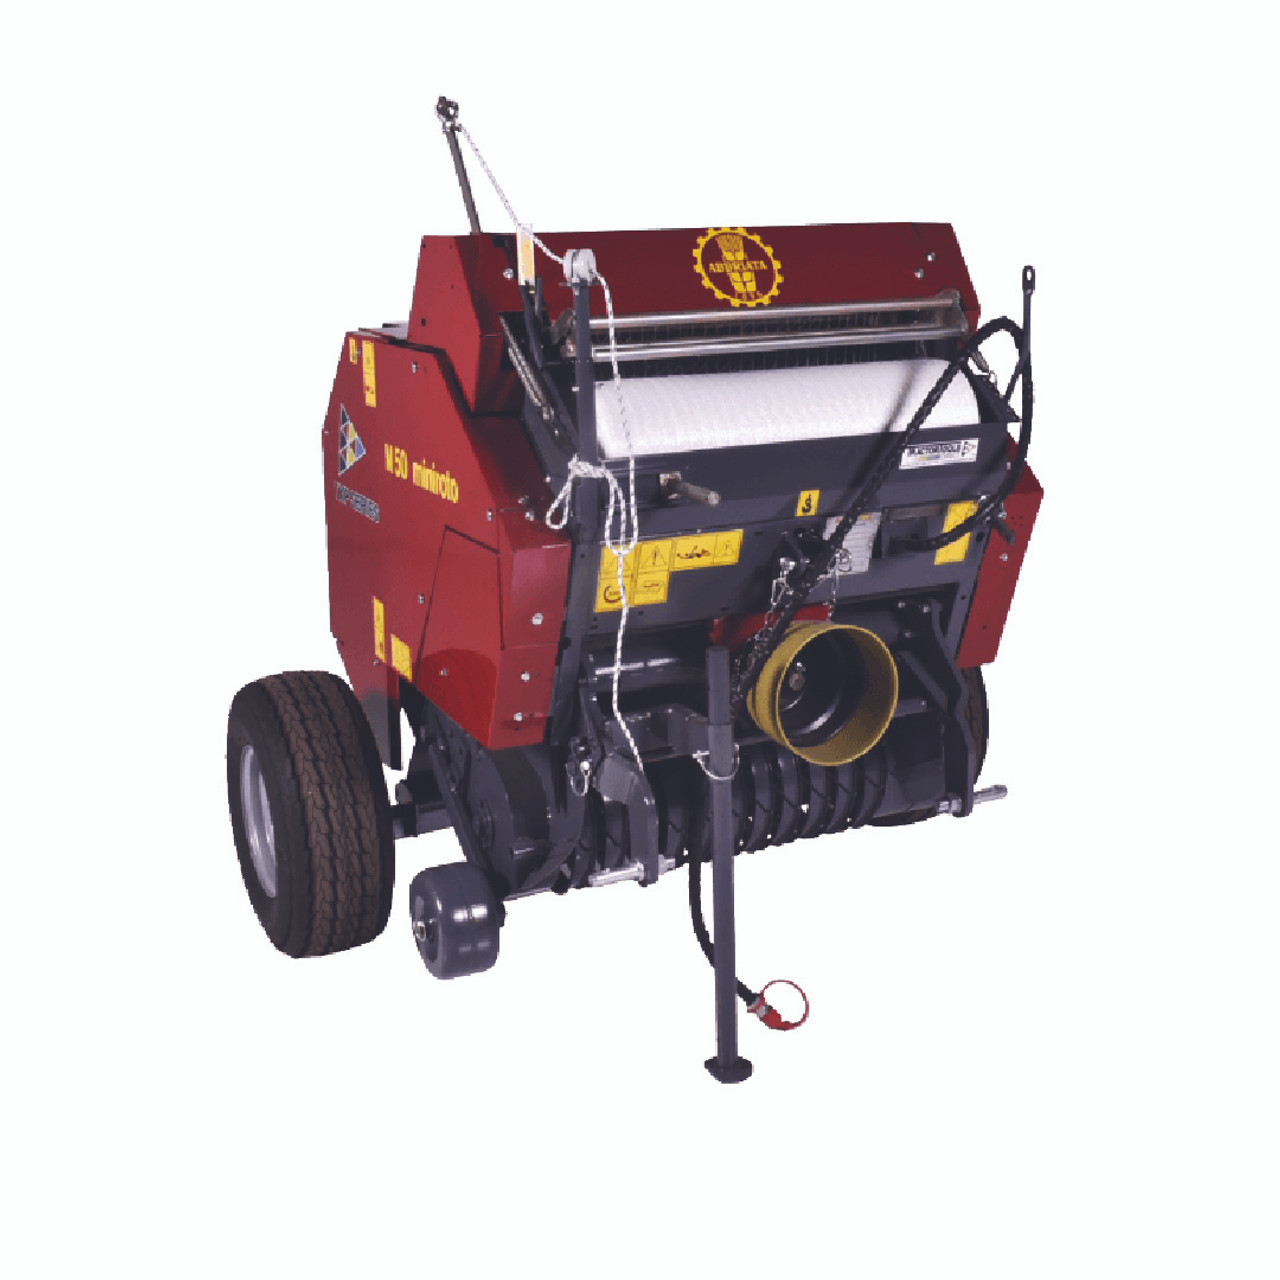 TXP33 Mini Round Baler with Net Wrap